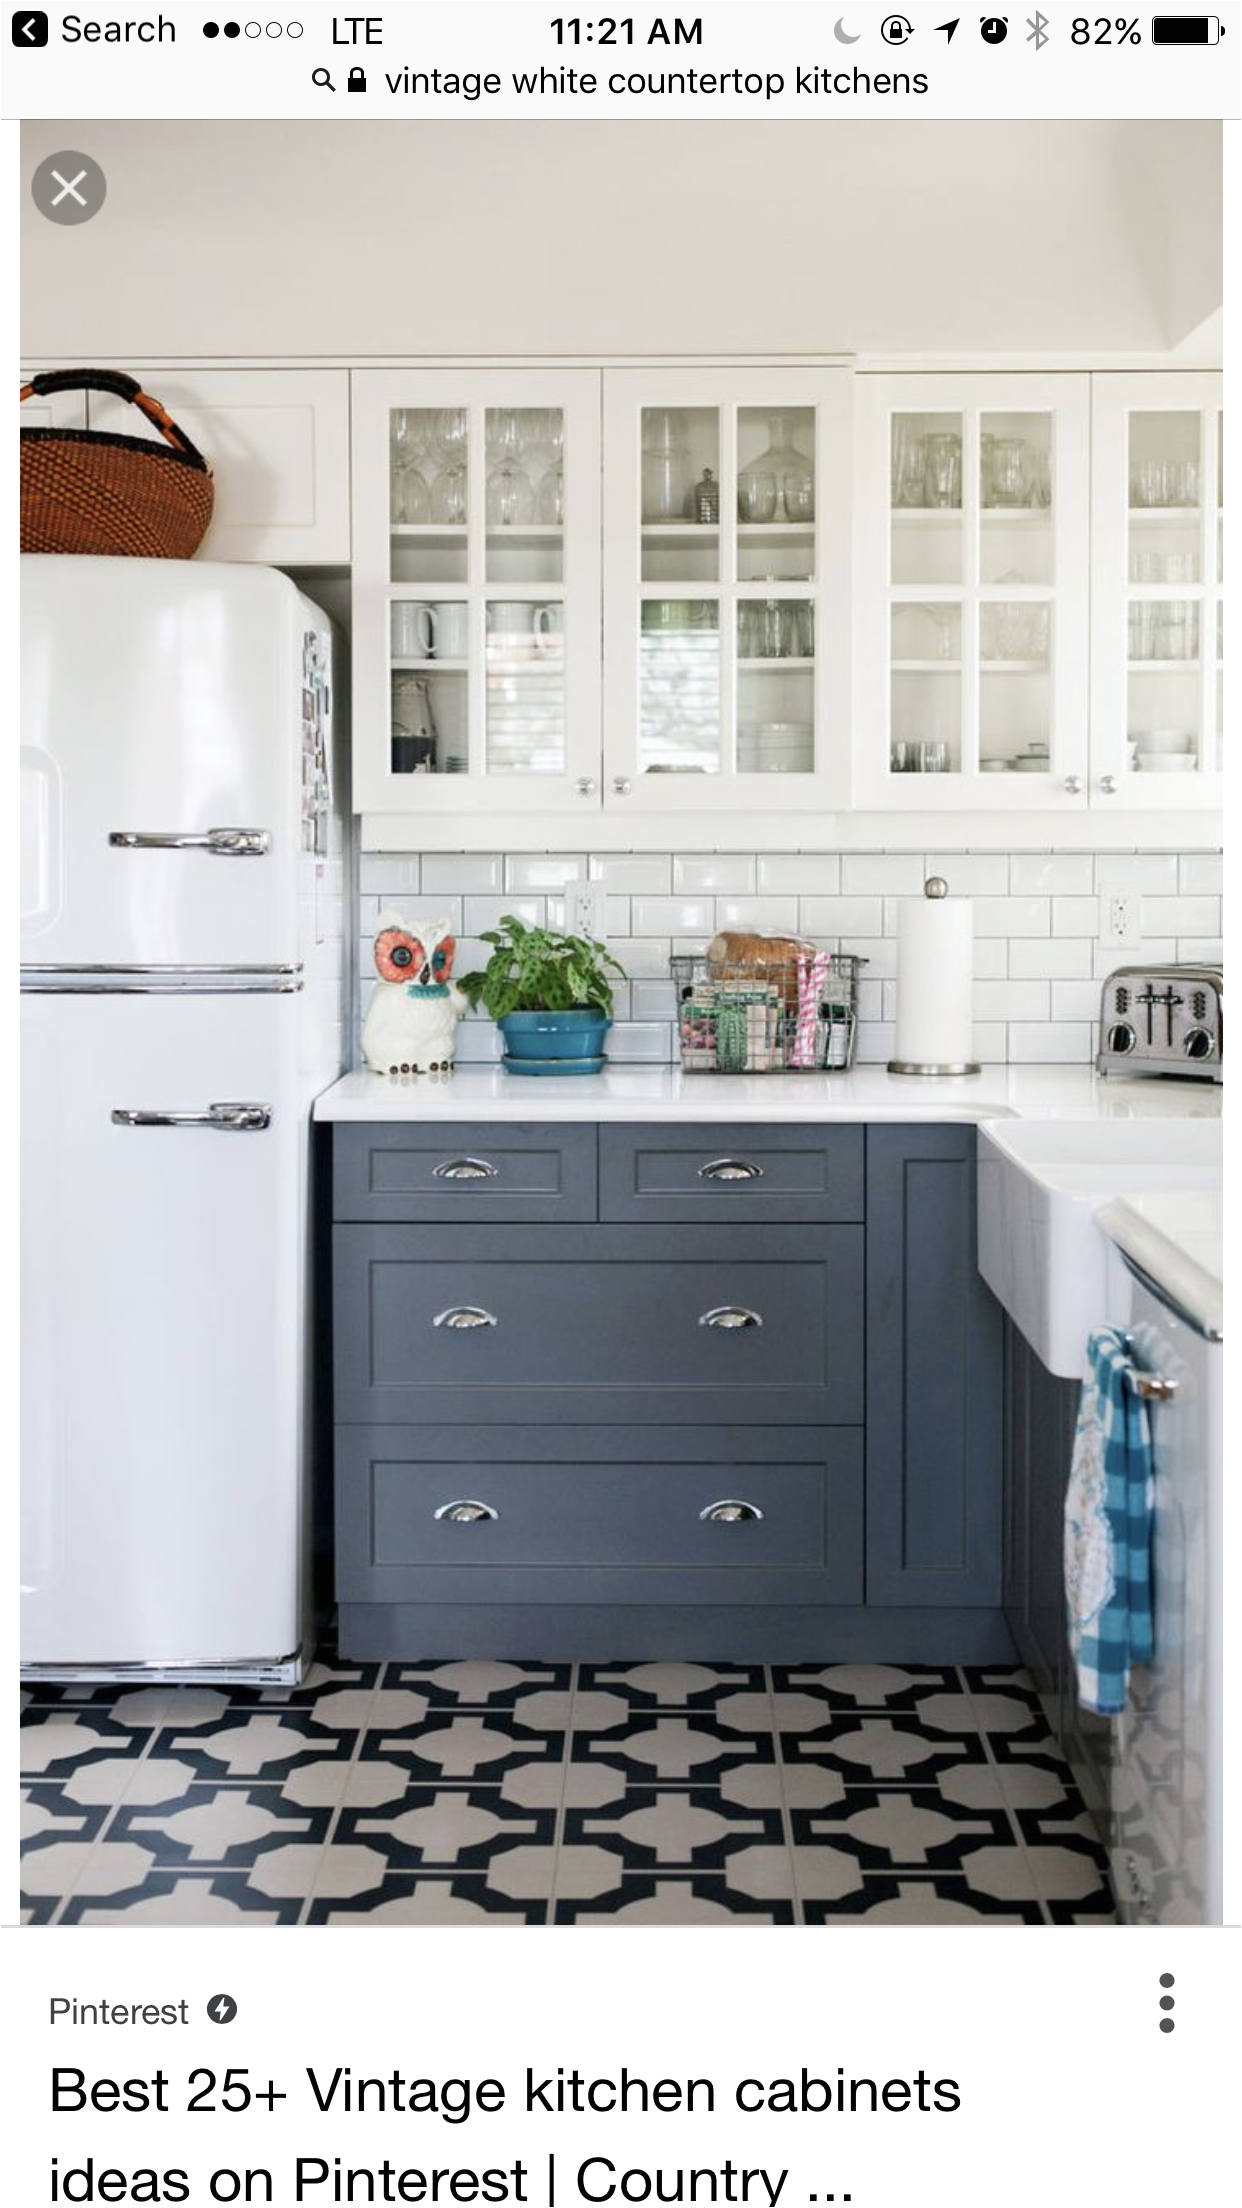 here is a blue white kitchen that fits my vision with a simple interesting floor gorgeous home Postwar Construction Meets Prewar Charm in Victoria